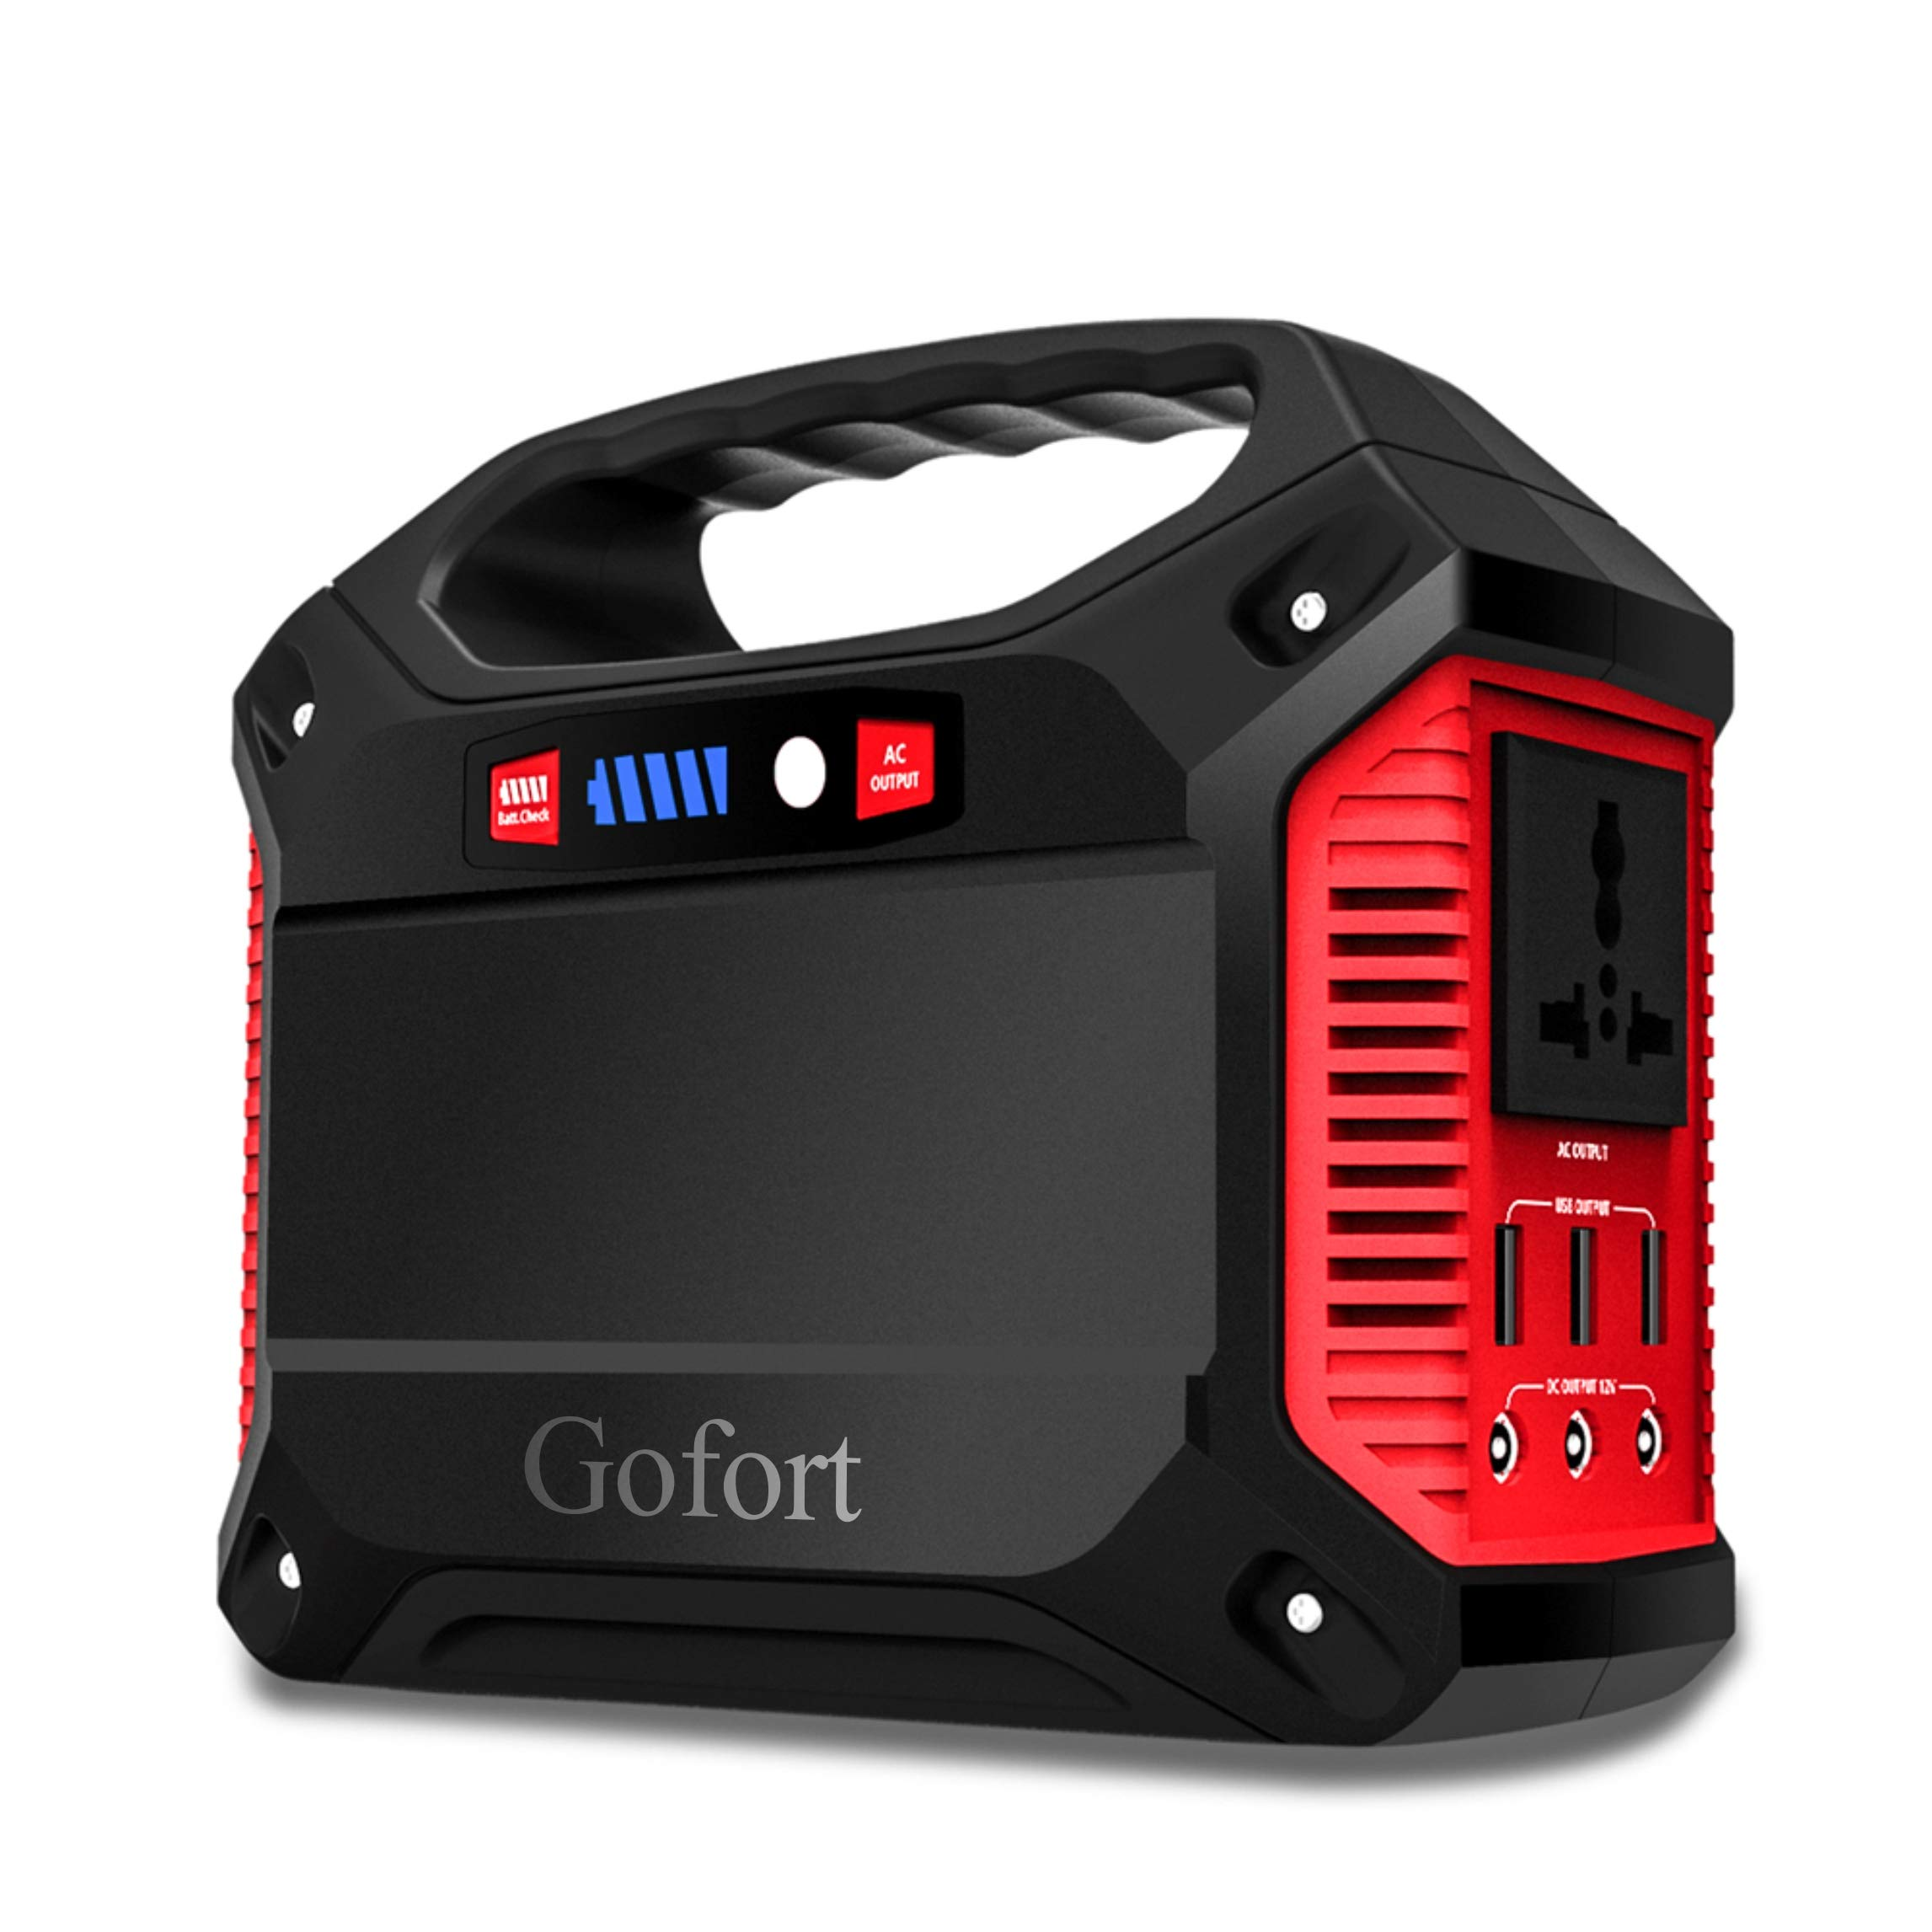 GOFORT Portable Power Solar Generator Power Inverter 42000mAh 155Wh Rechargeable Battery Pack Emergency